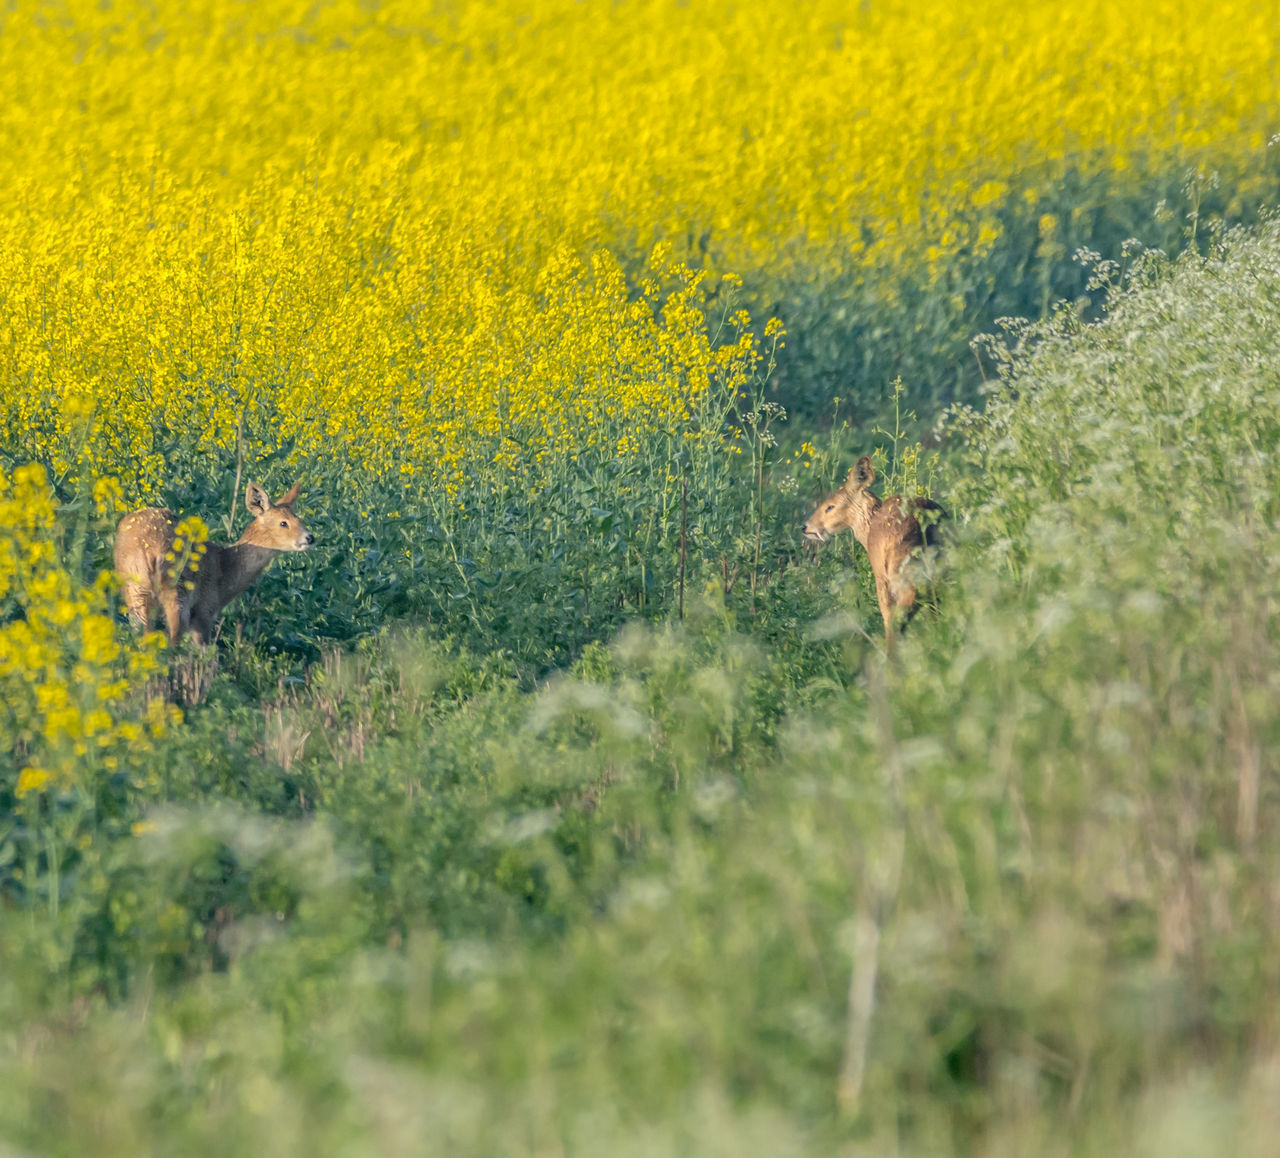 animal, animal themes, animal wildlife, plant, mammal, animals in the wild, nature, yellow, environment, beauty in nature, scenics - nature, one animal, no people, landscape, field, day, agriculture, vertebrate, grass, land, outdoors